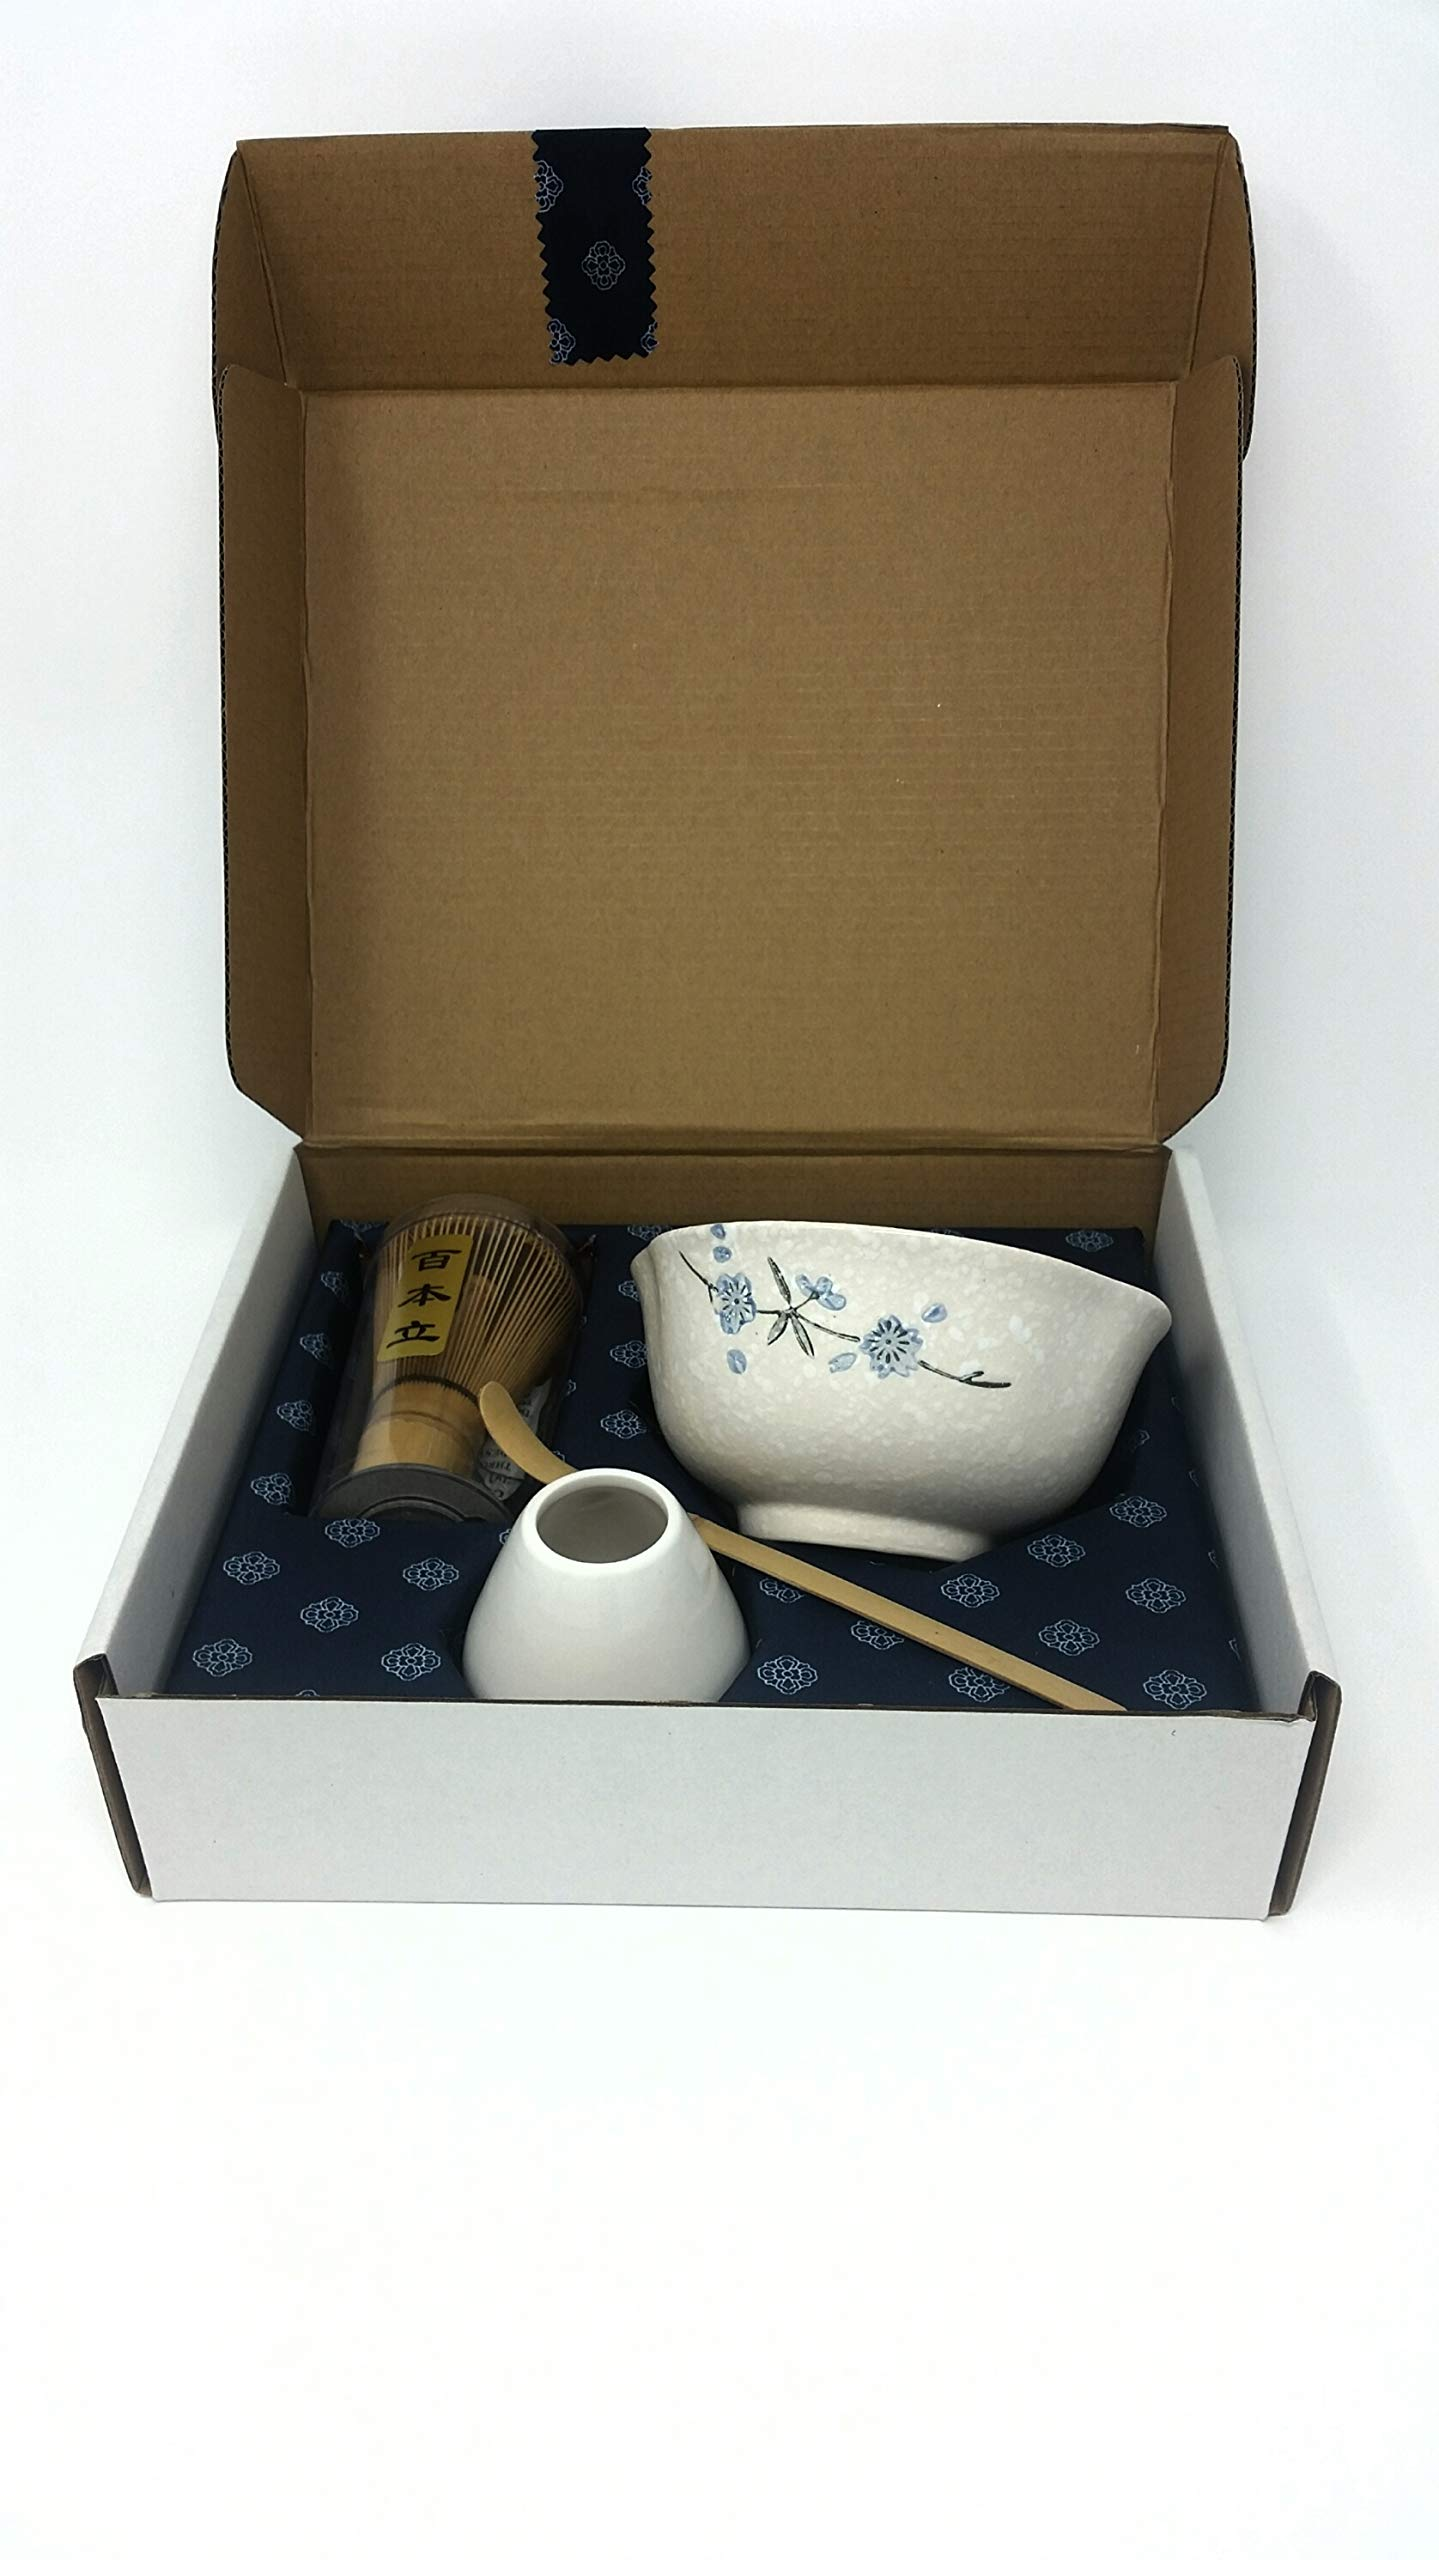 Matcha Green Tea Gift Set Includes Blue Blossom White Matcha Bowl, Whisk, Stand and Scoop for Traditional Japanese Tea Ceremony or Everyday Use